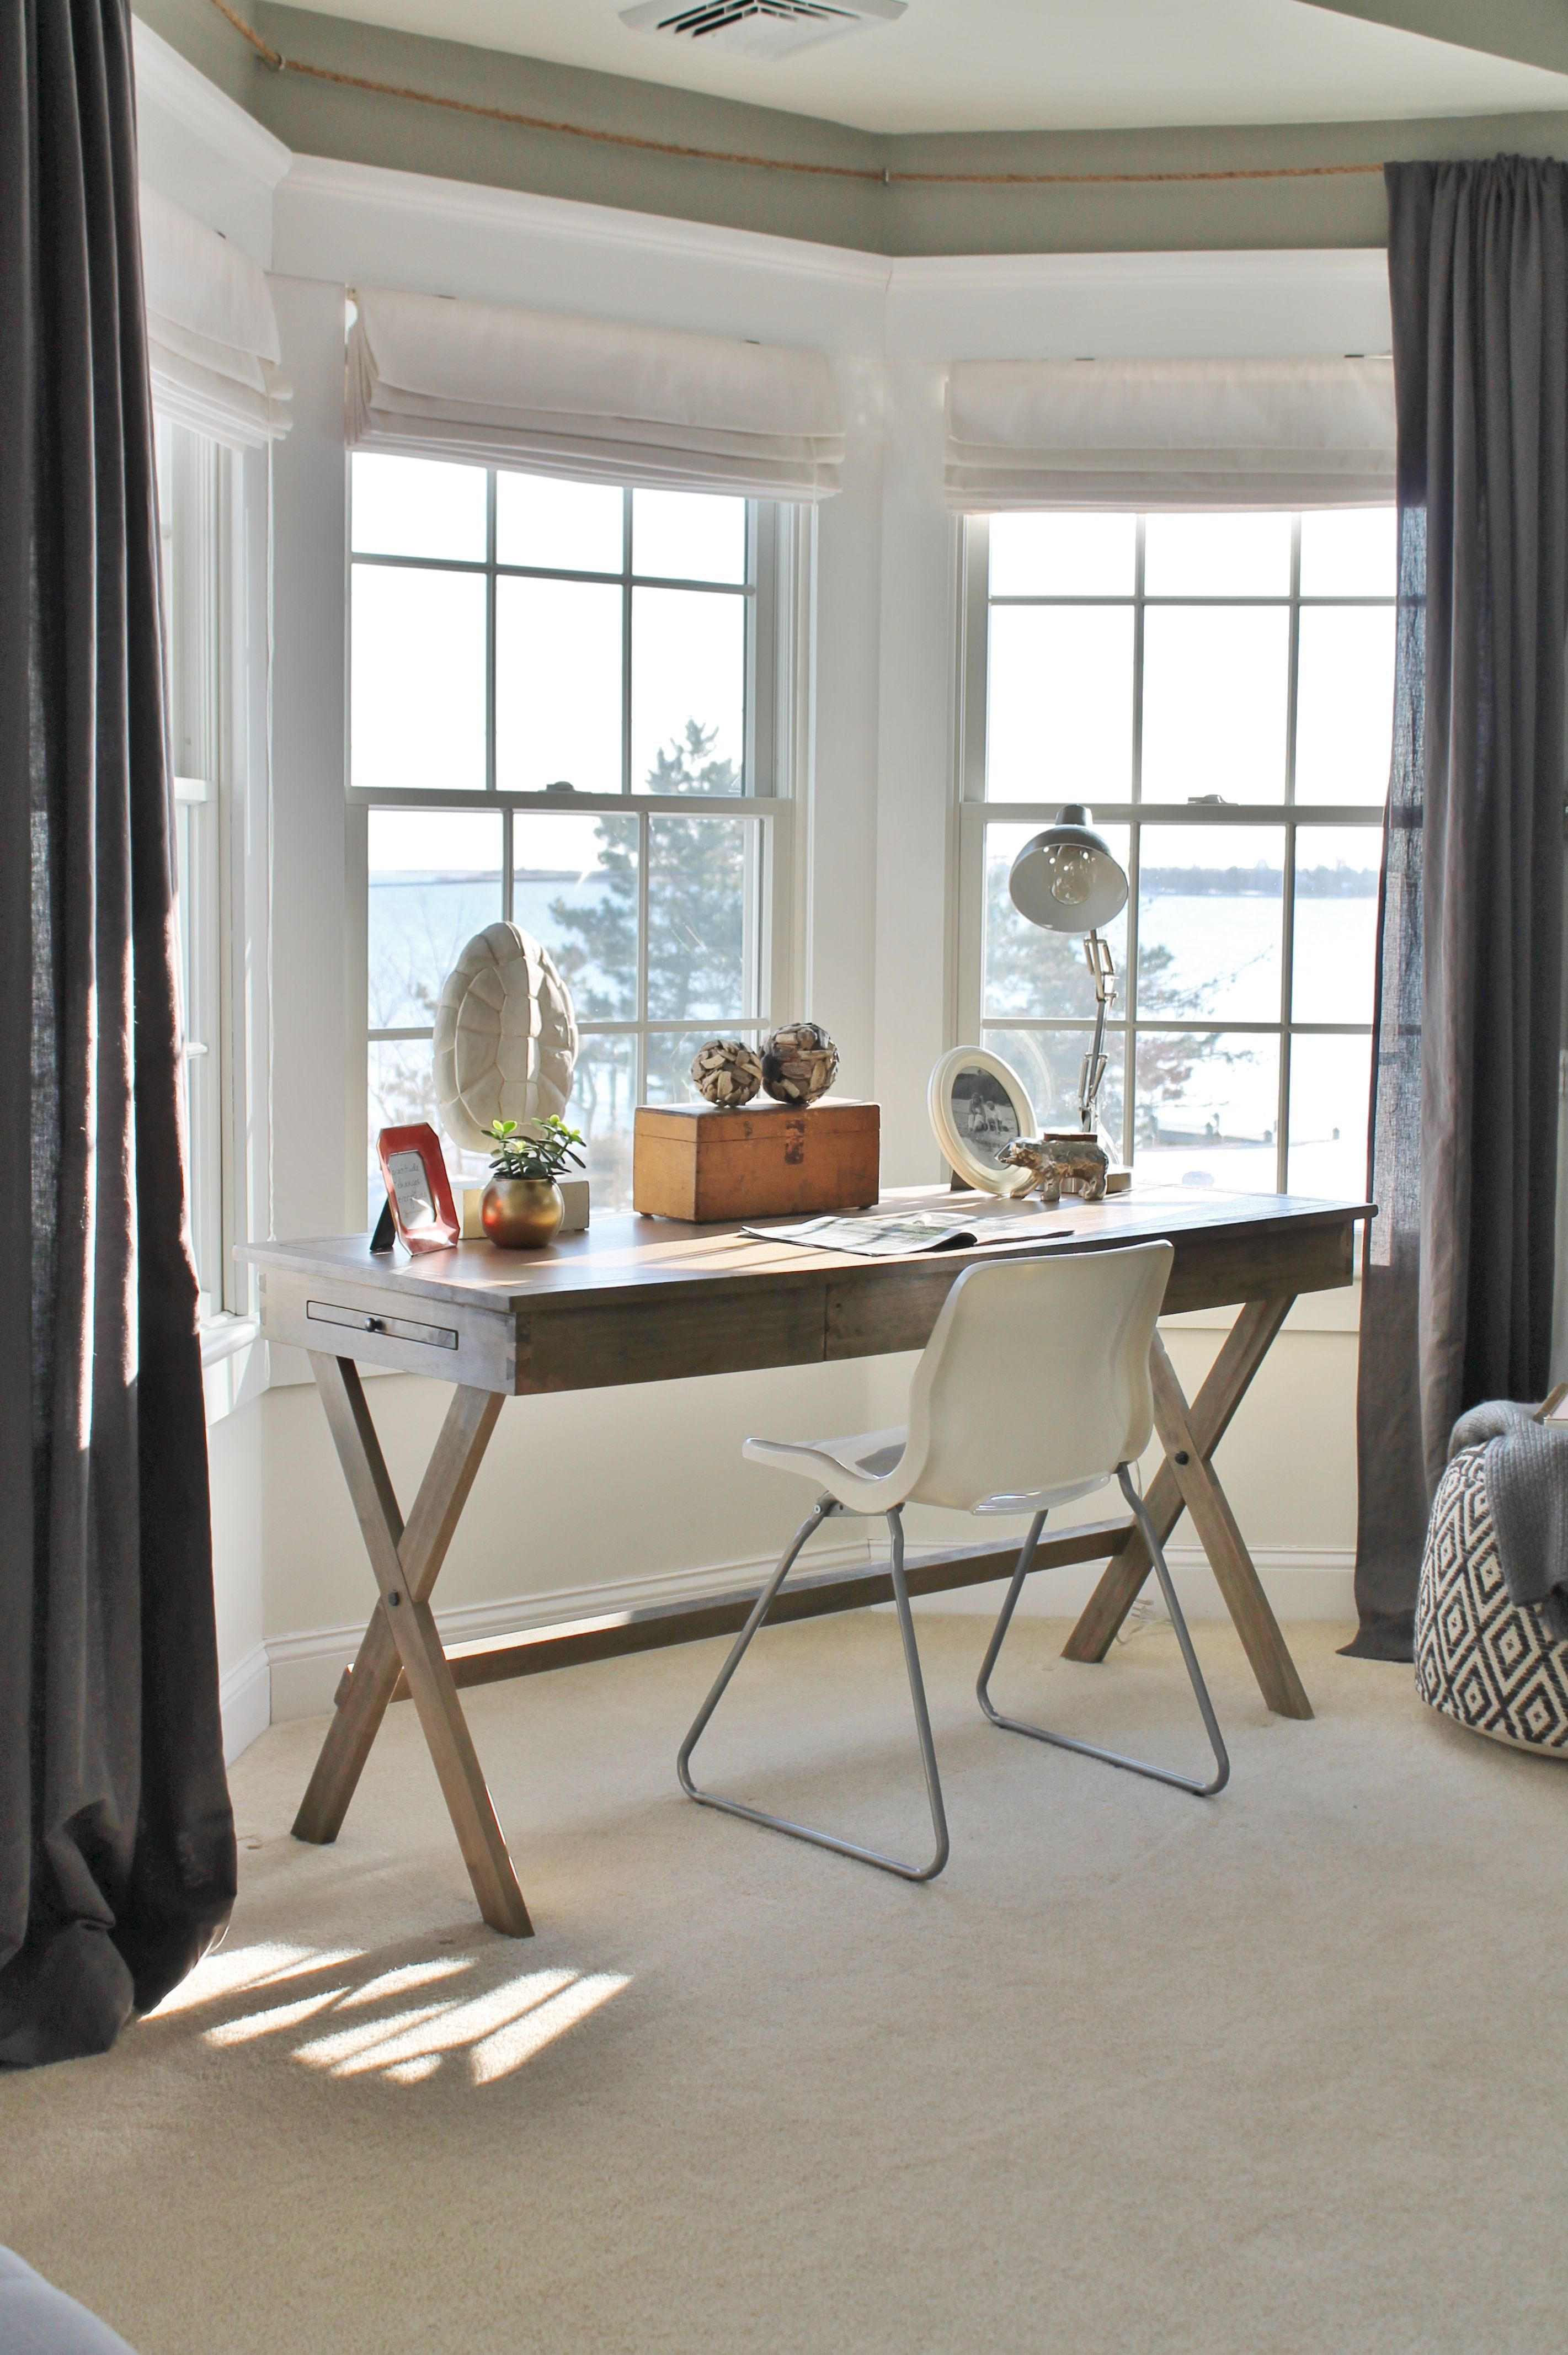 Mesmerizing Window Design For Small House To Be Inspired By: Rustic Chic Mini Master Reveal-My Desk